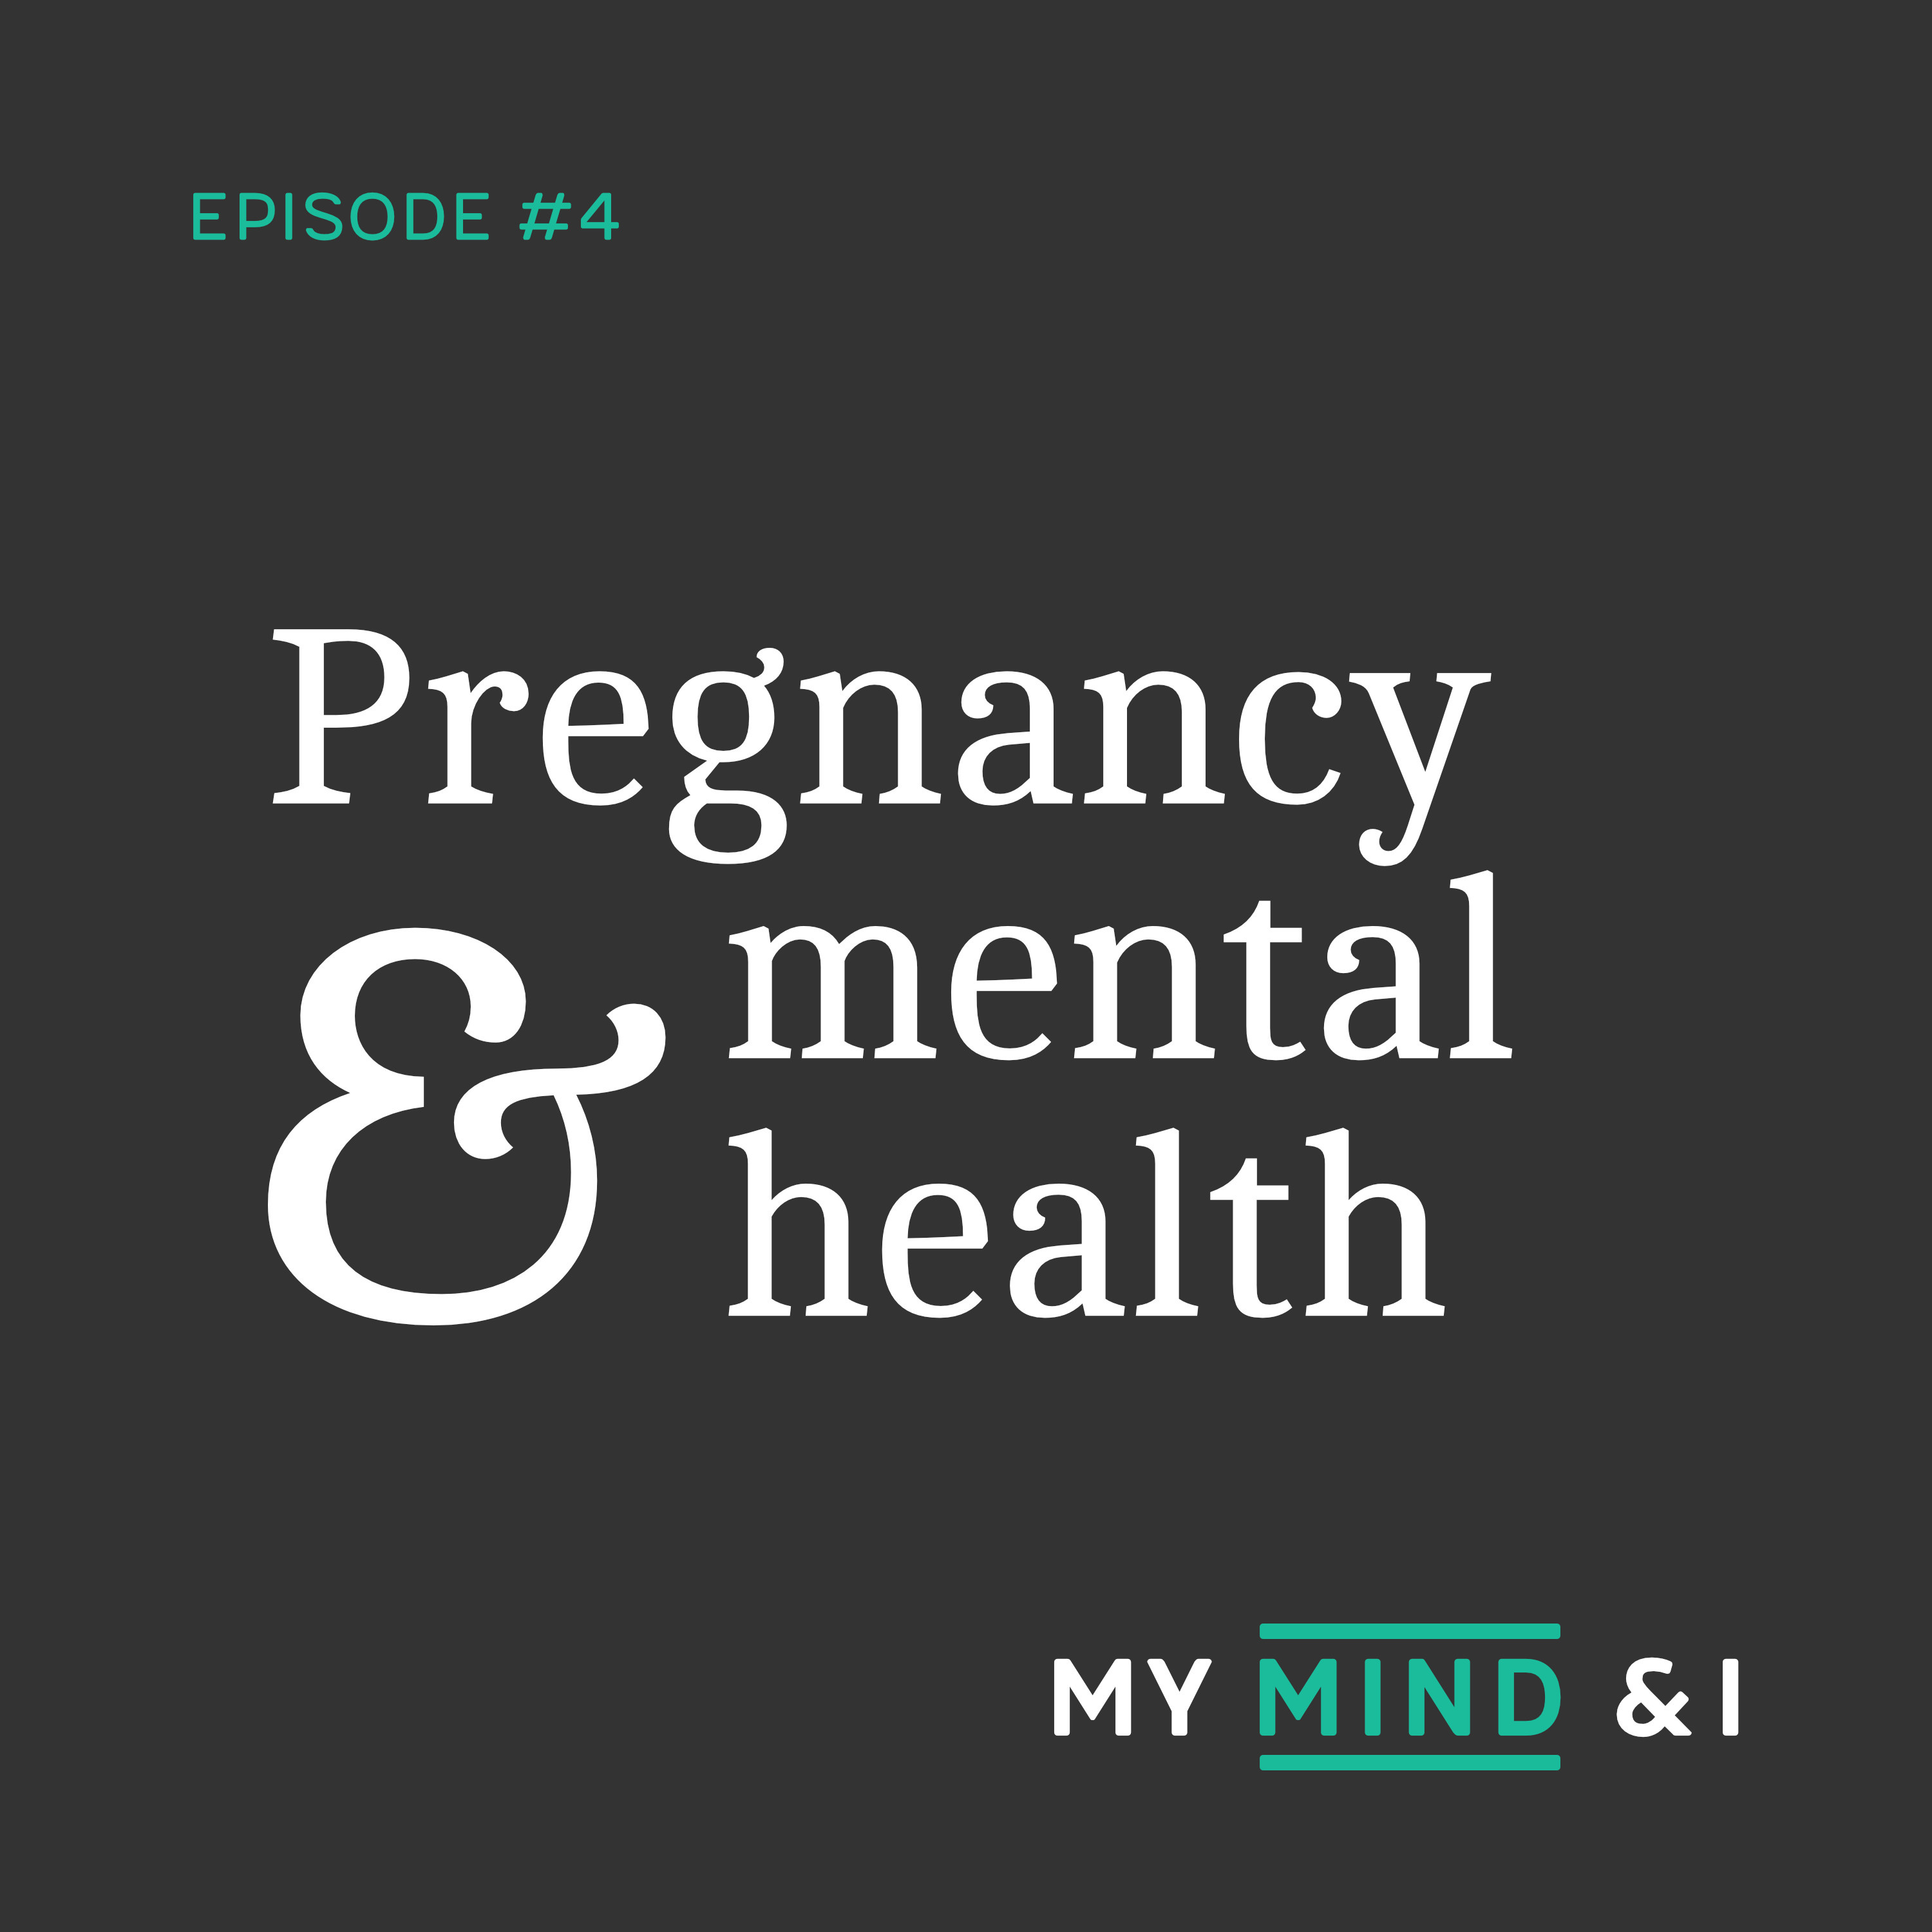 #4 Pregnancy & mental health